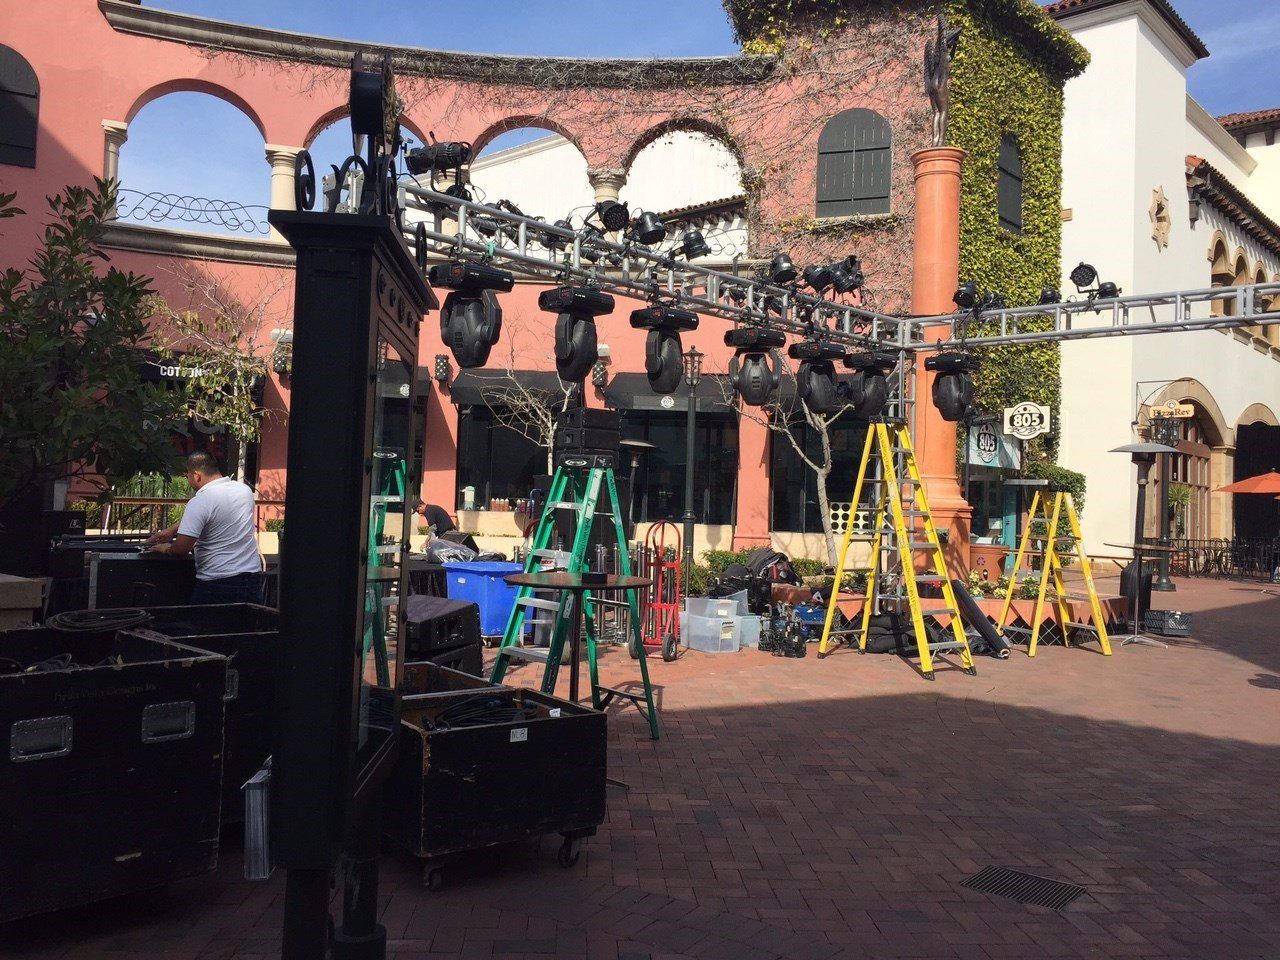 Preparations for the opening night of the Santa Barbara International Film Festival. (KSBY photo)